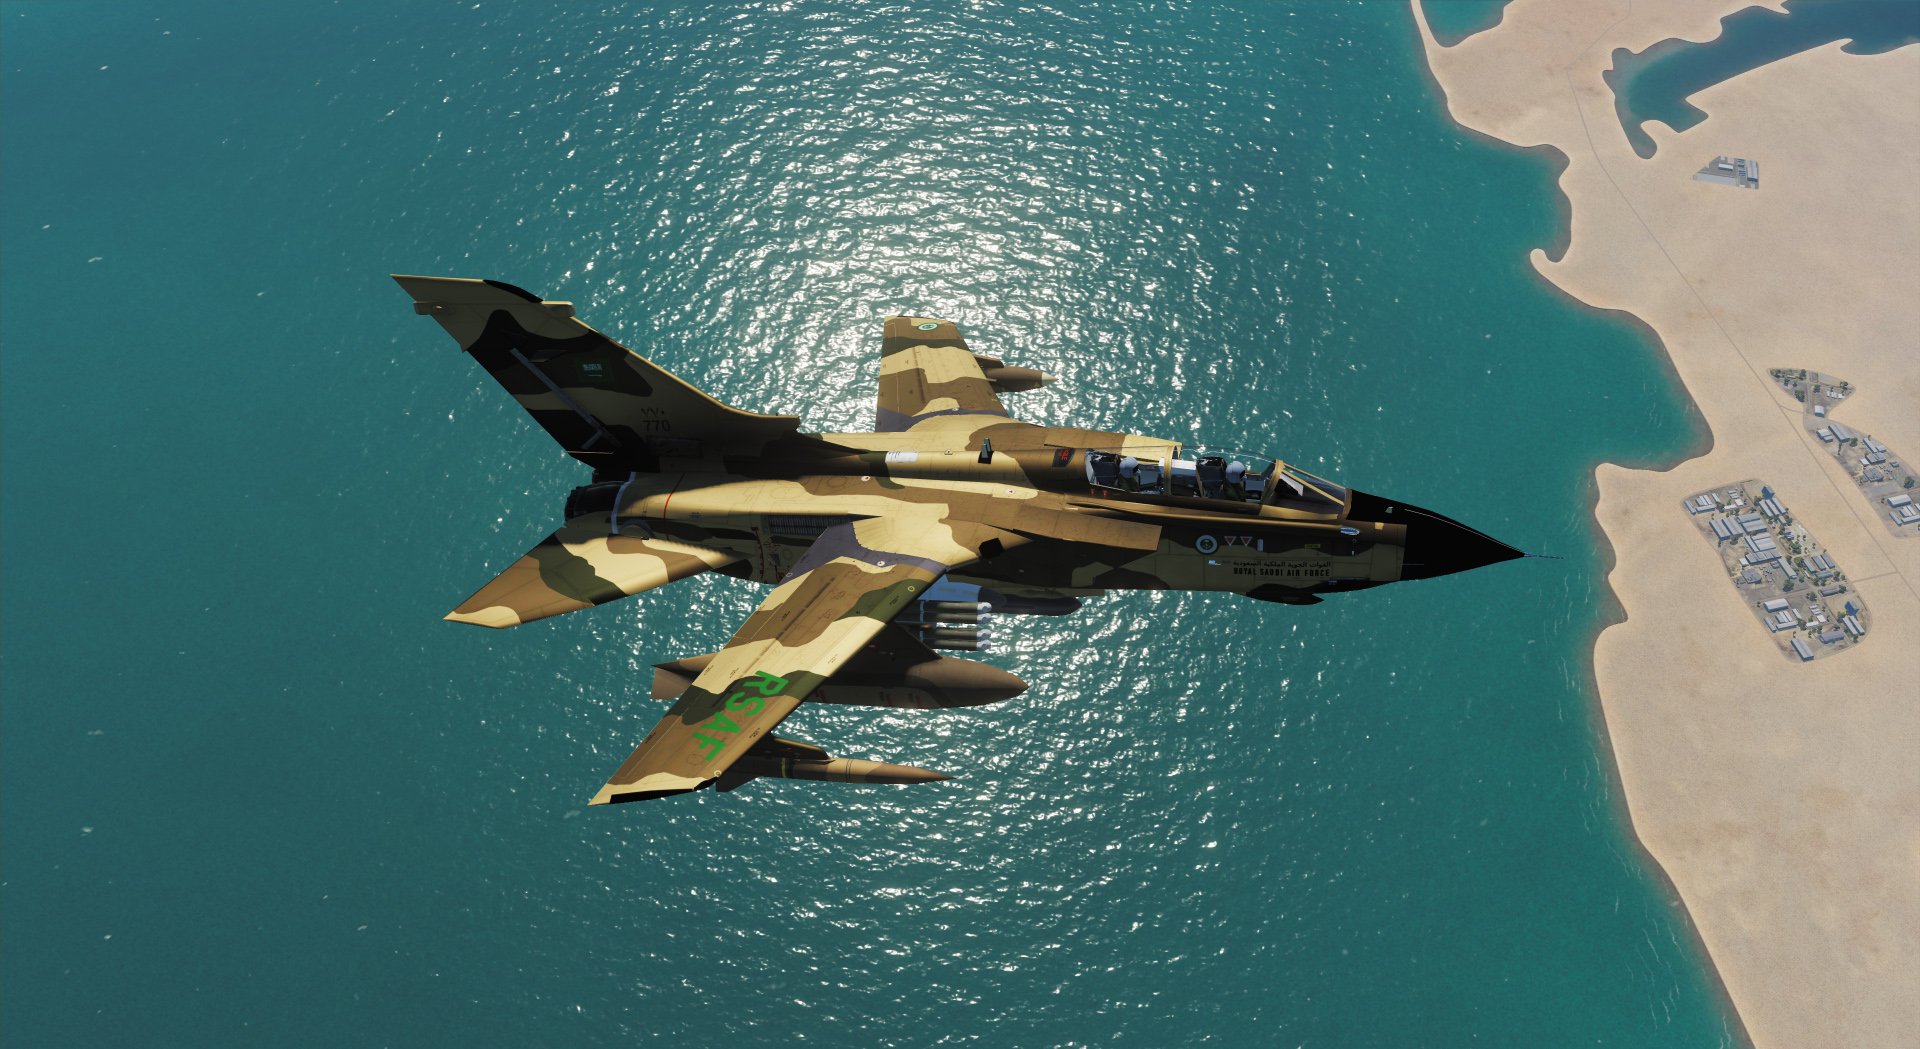 Royal Saudi Air Force Tornado Camouflage_2